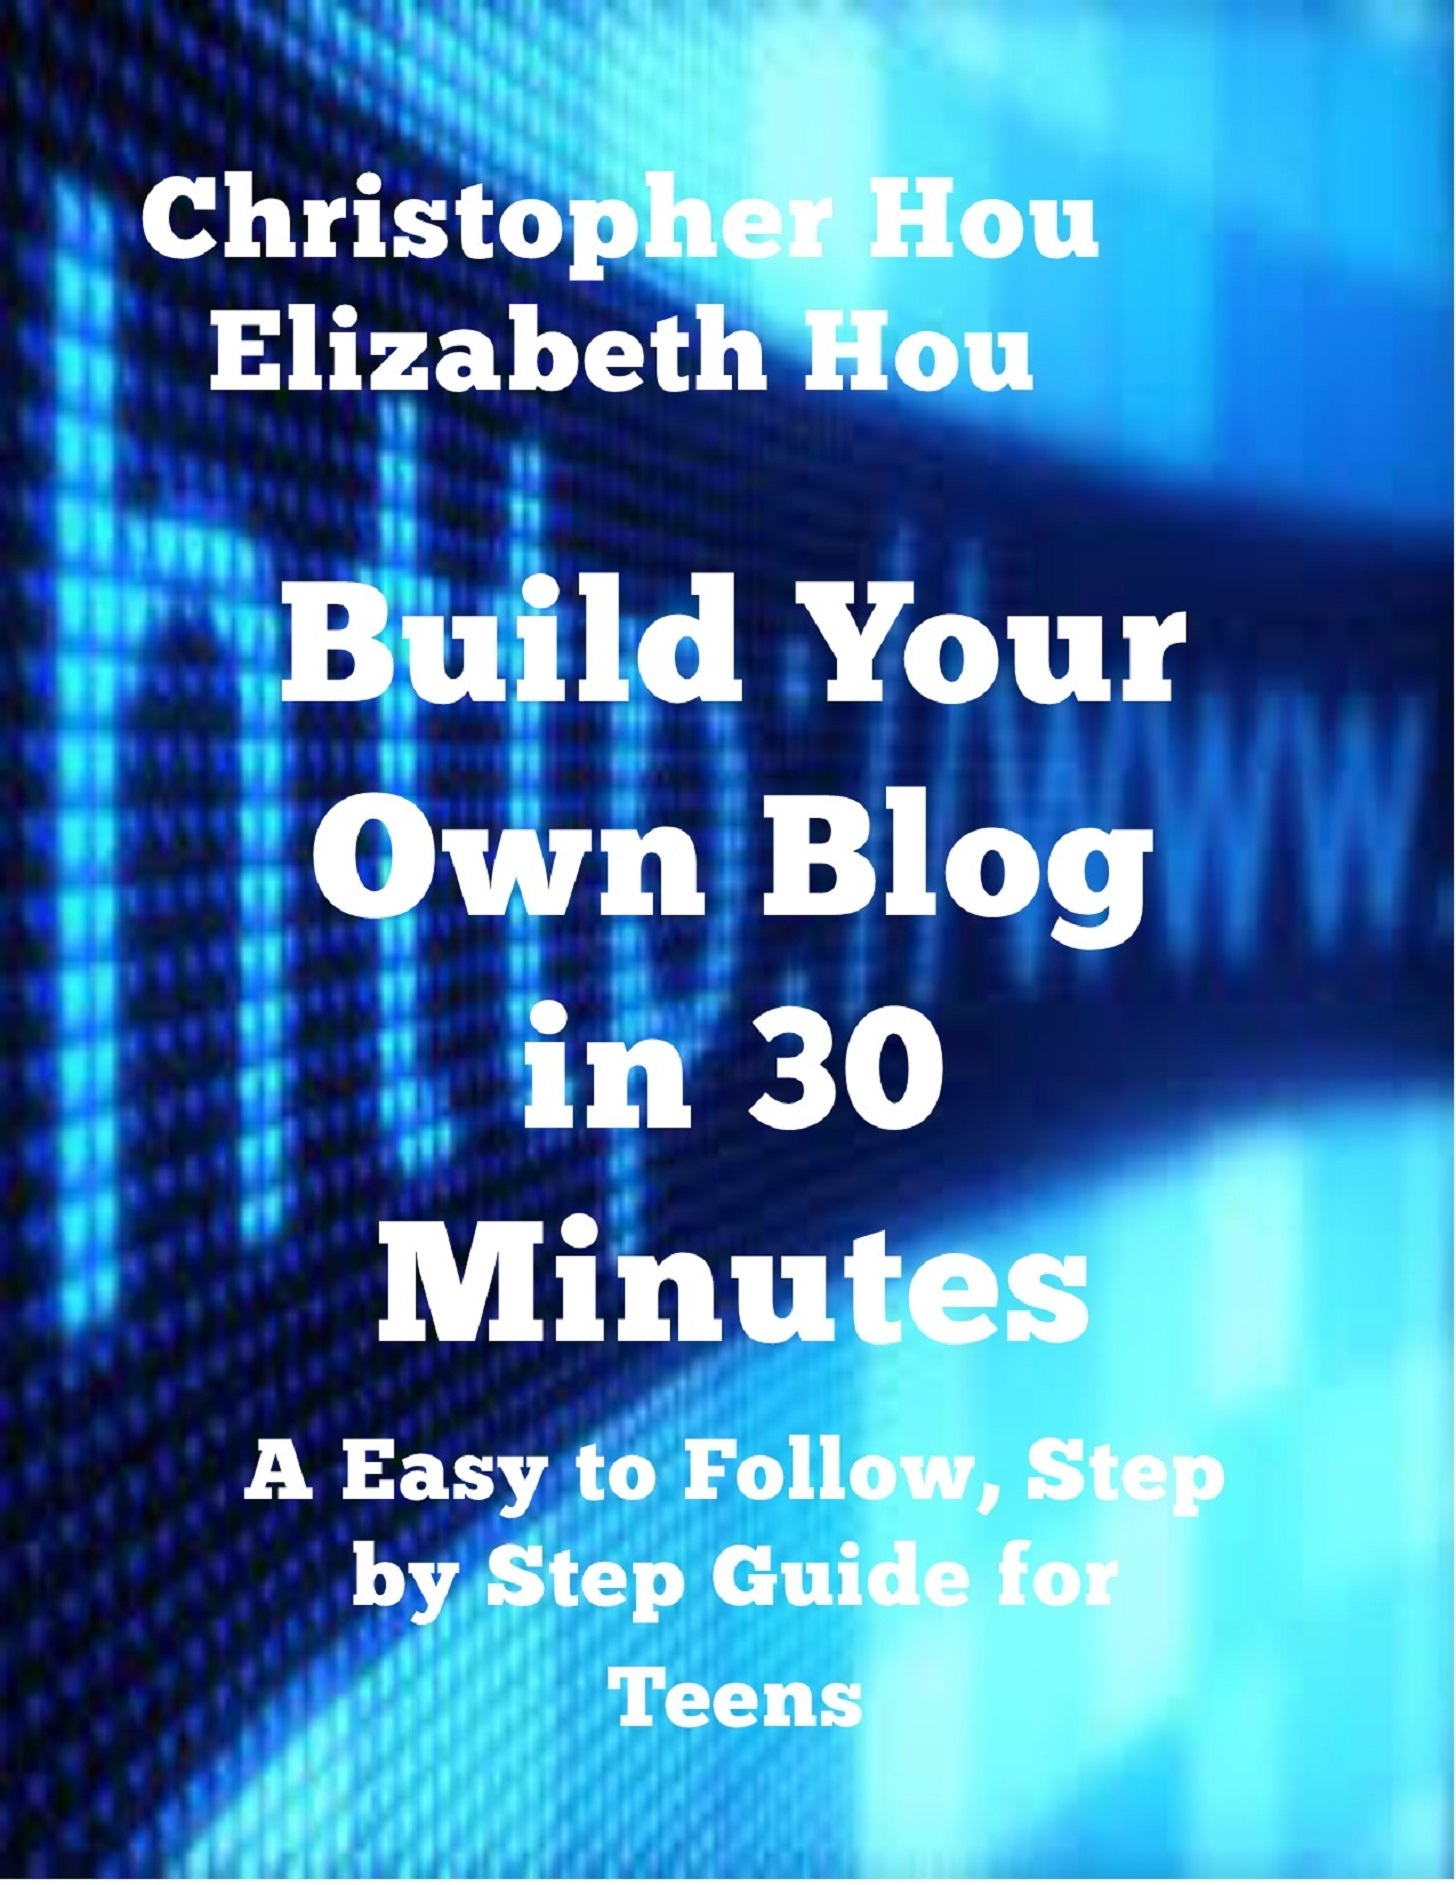 Build Your Own Blog in 30 Minutes An Easy to Follow, Step-by-Step Guide for Teens  by  Christopher Hou and Elizabeth Hou